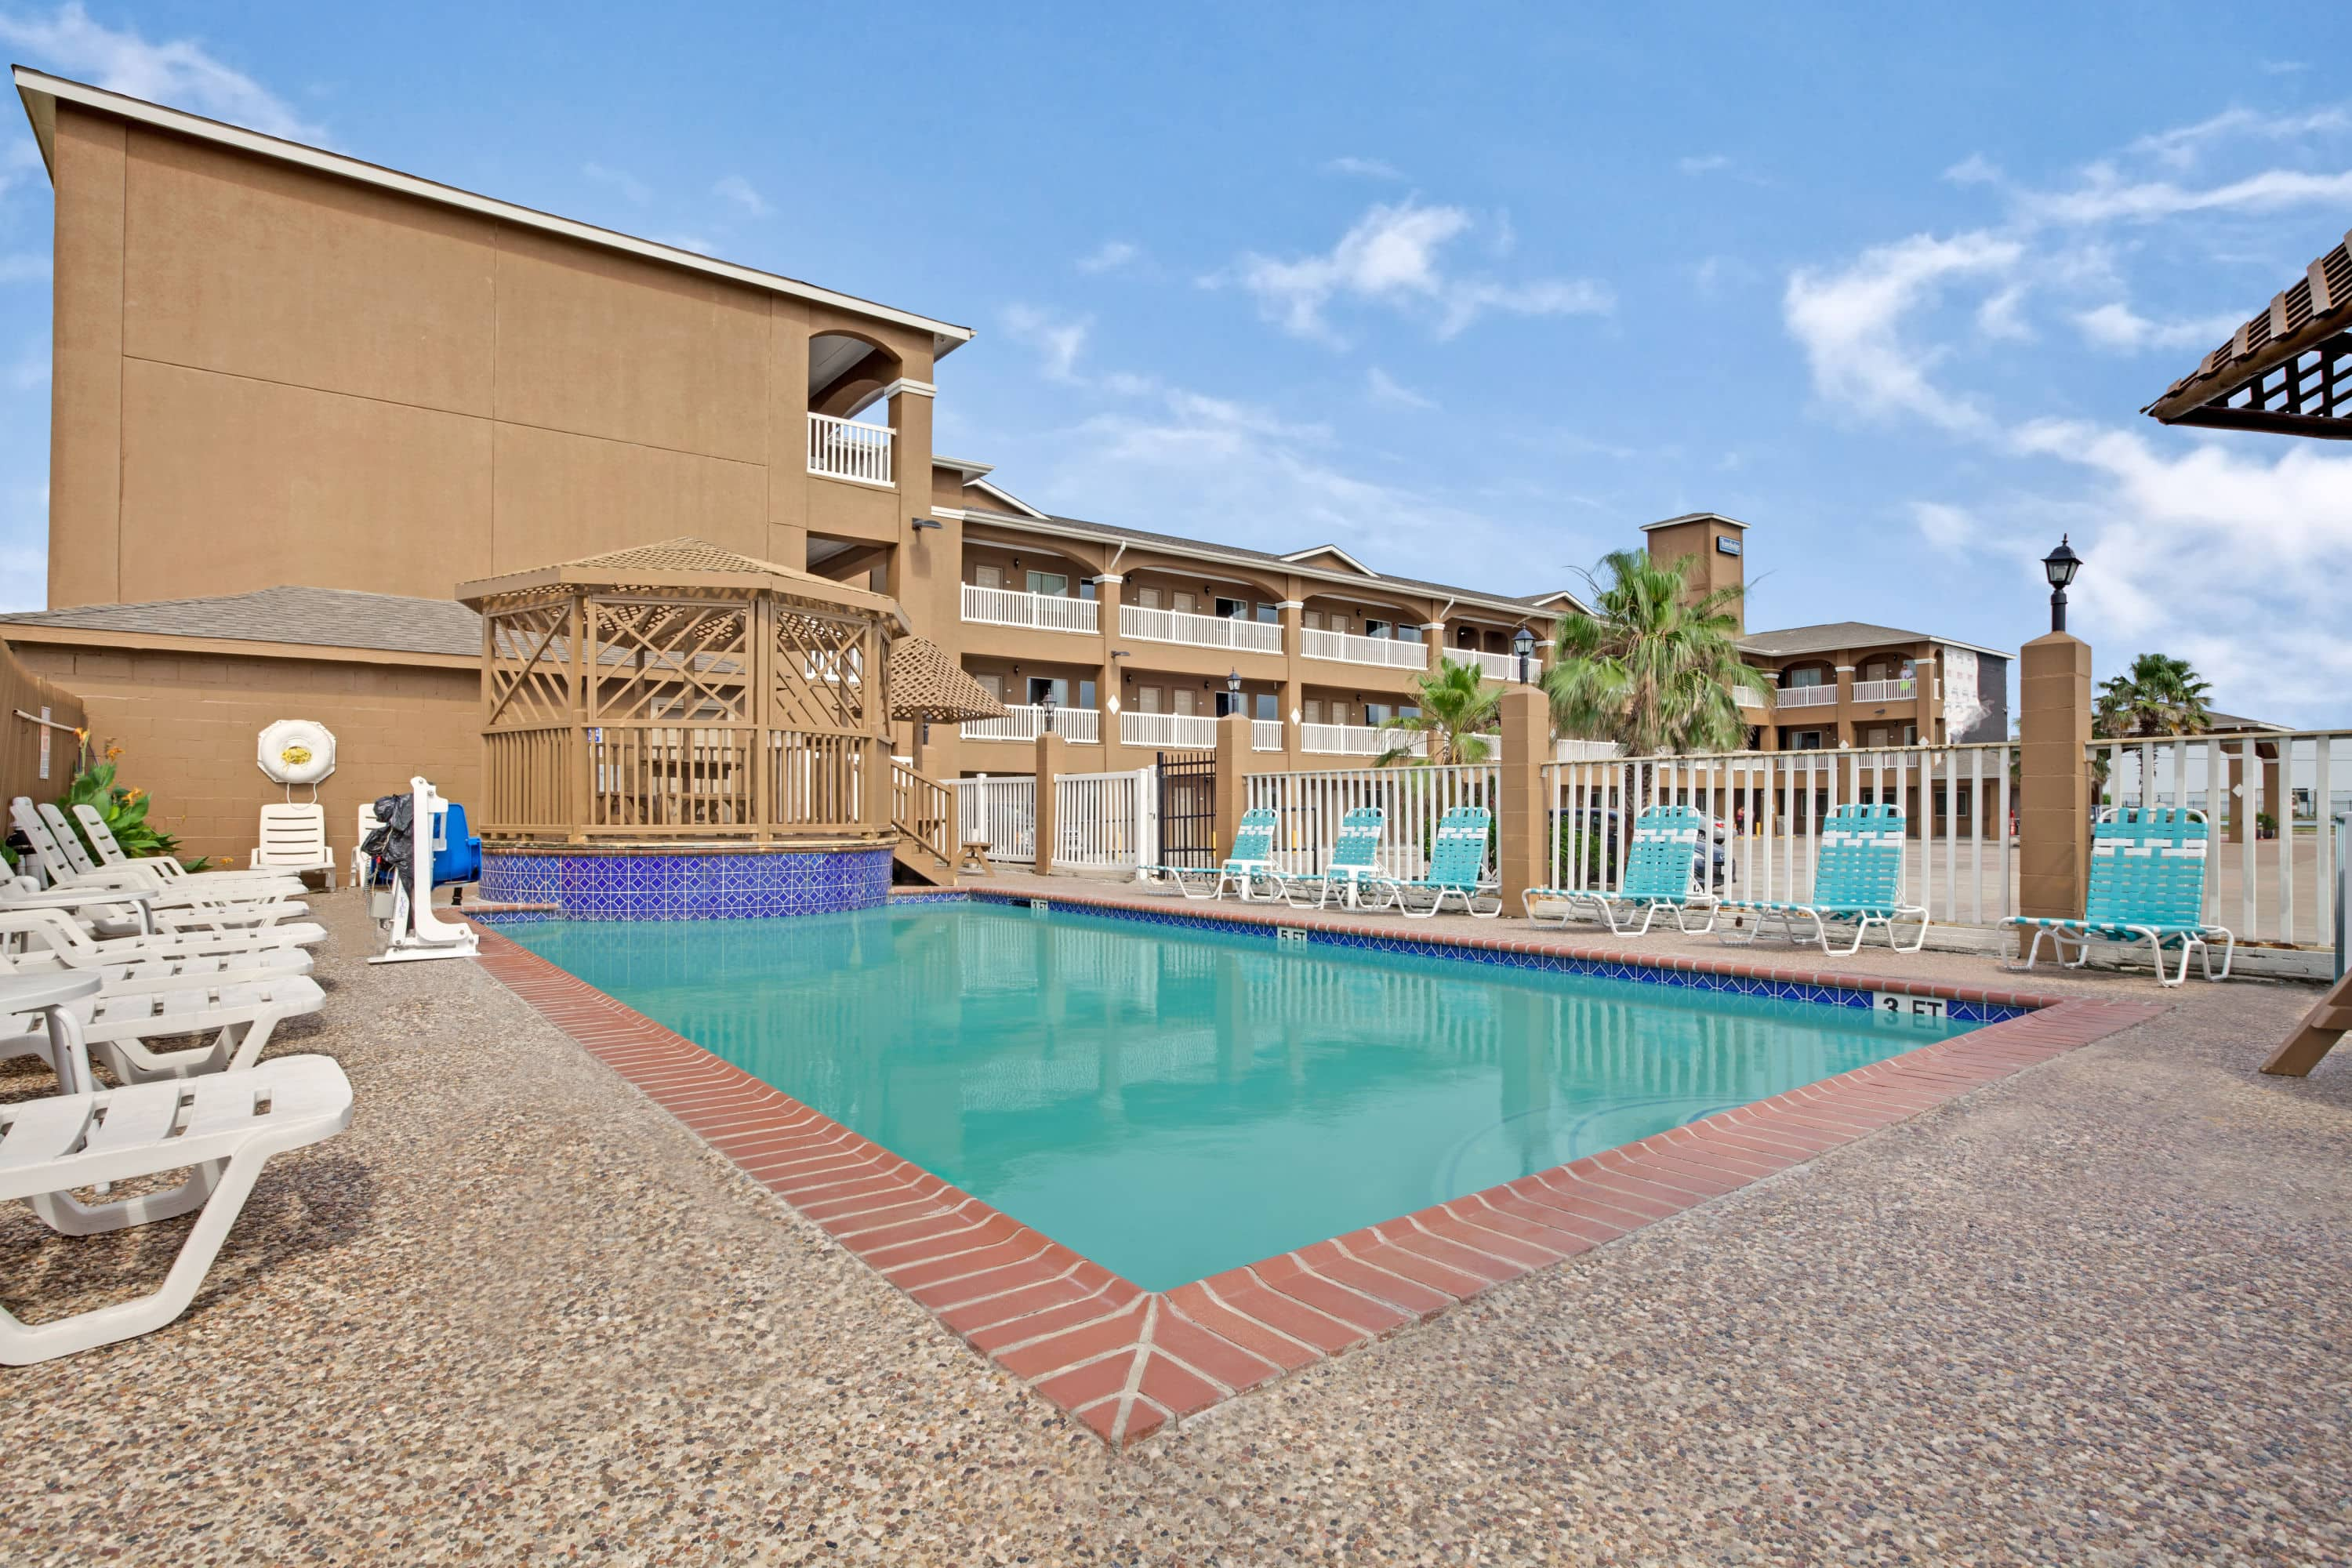 Travelodge by Wyndham Galveston Galveston Hotels TX 77550